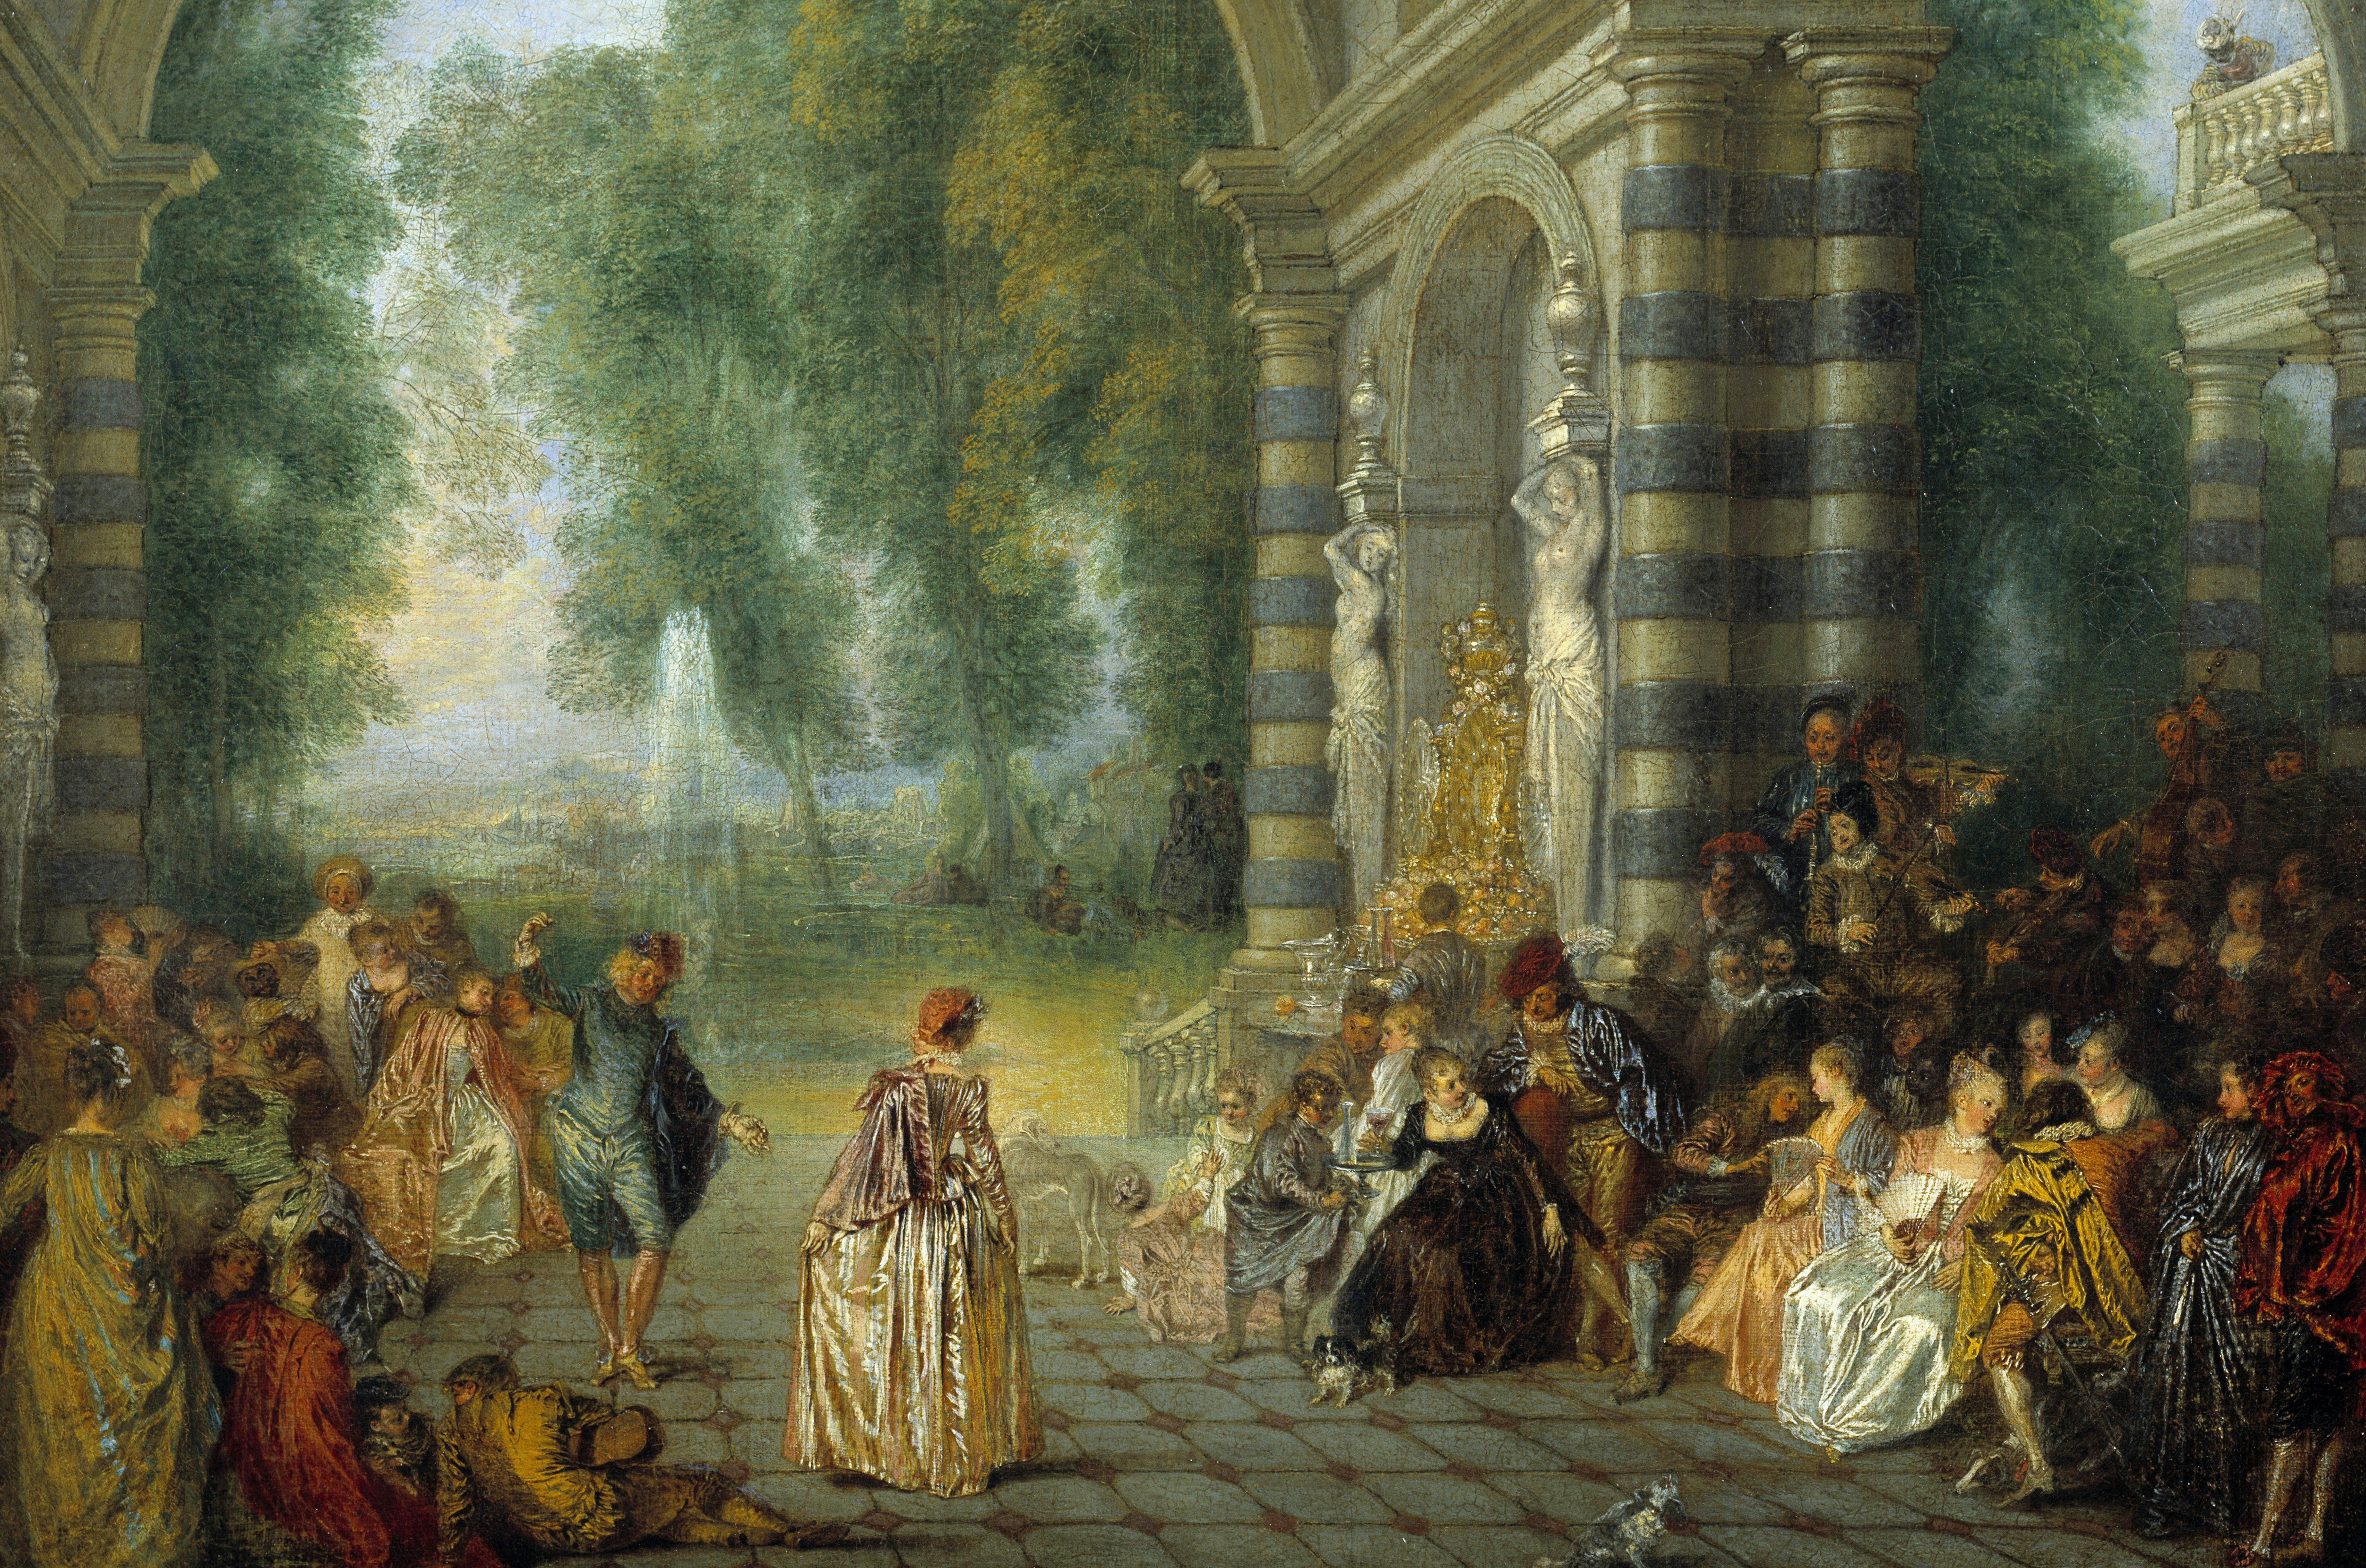 The Rococo A Beginners Guide To Art And Architecture - Rococo painting